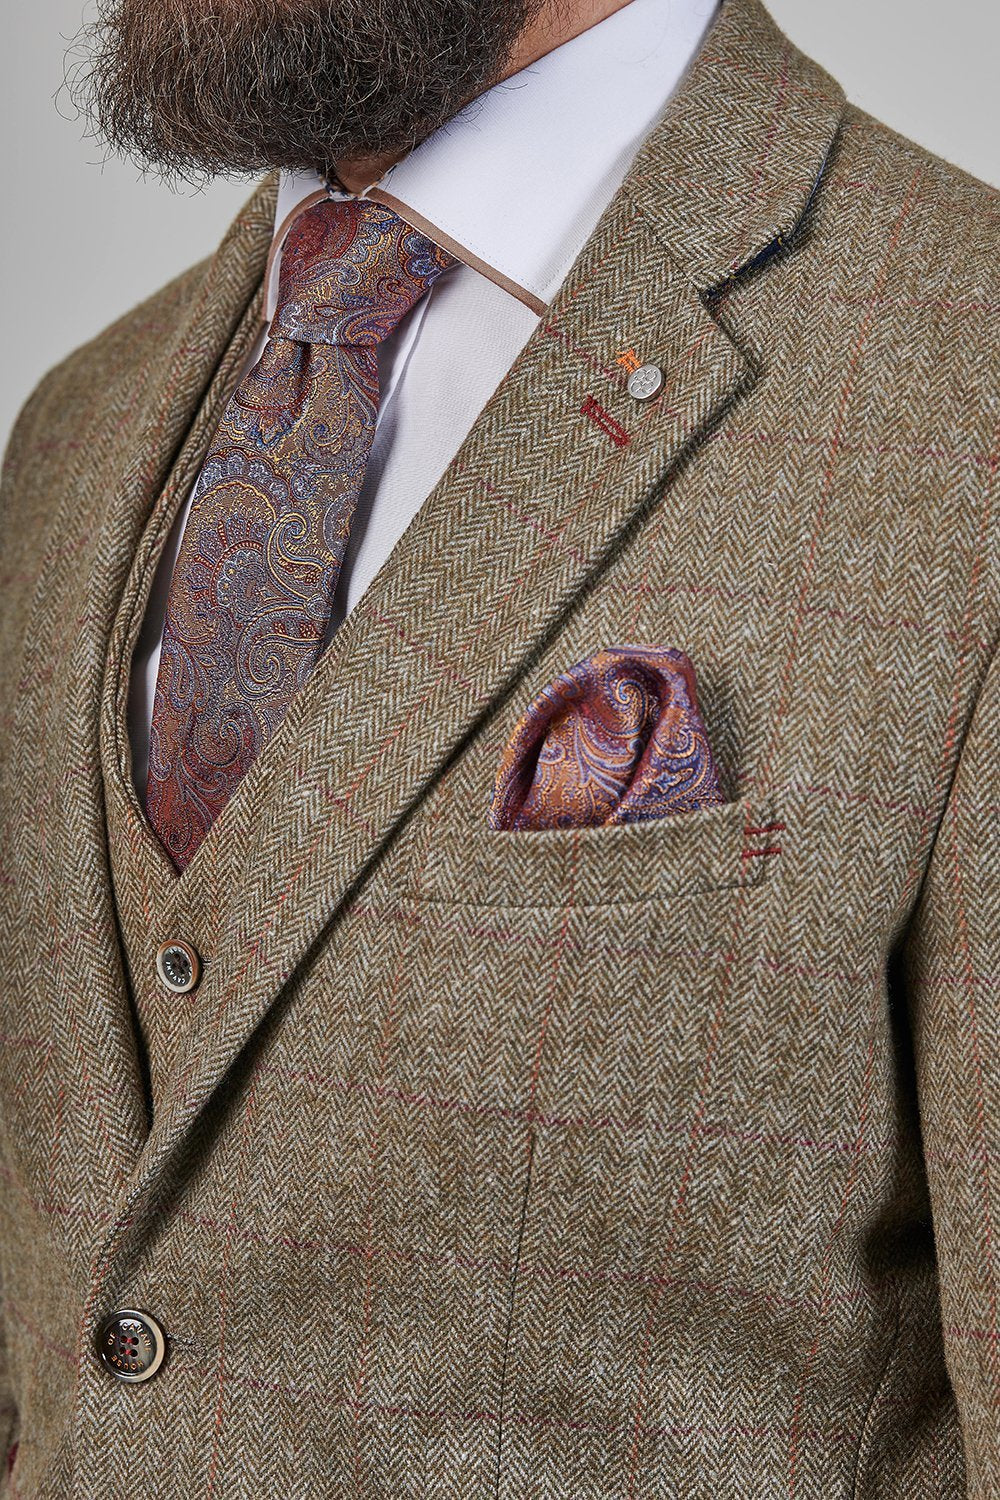 knightsbridge neckwear Knightsbridge Neckwear Bronze Blue Paisley Silk Pocket Square £14.99